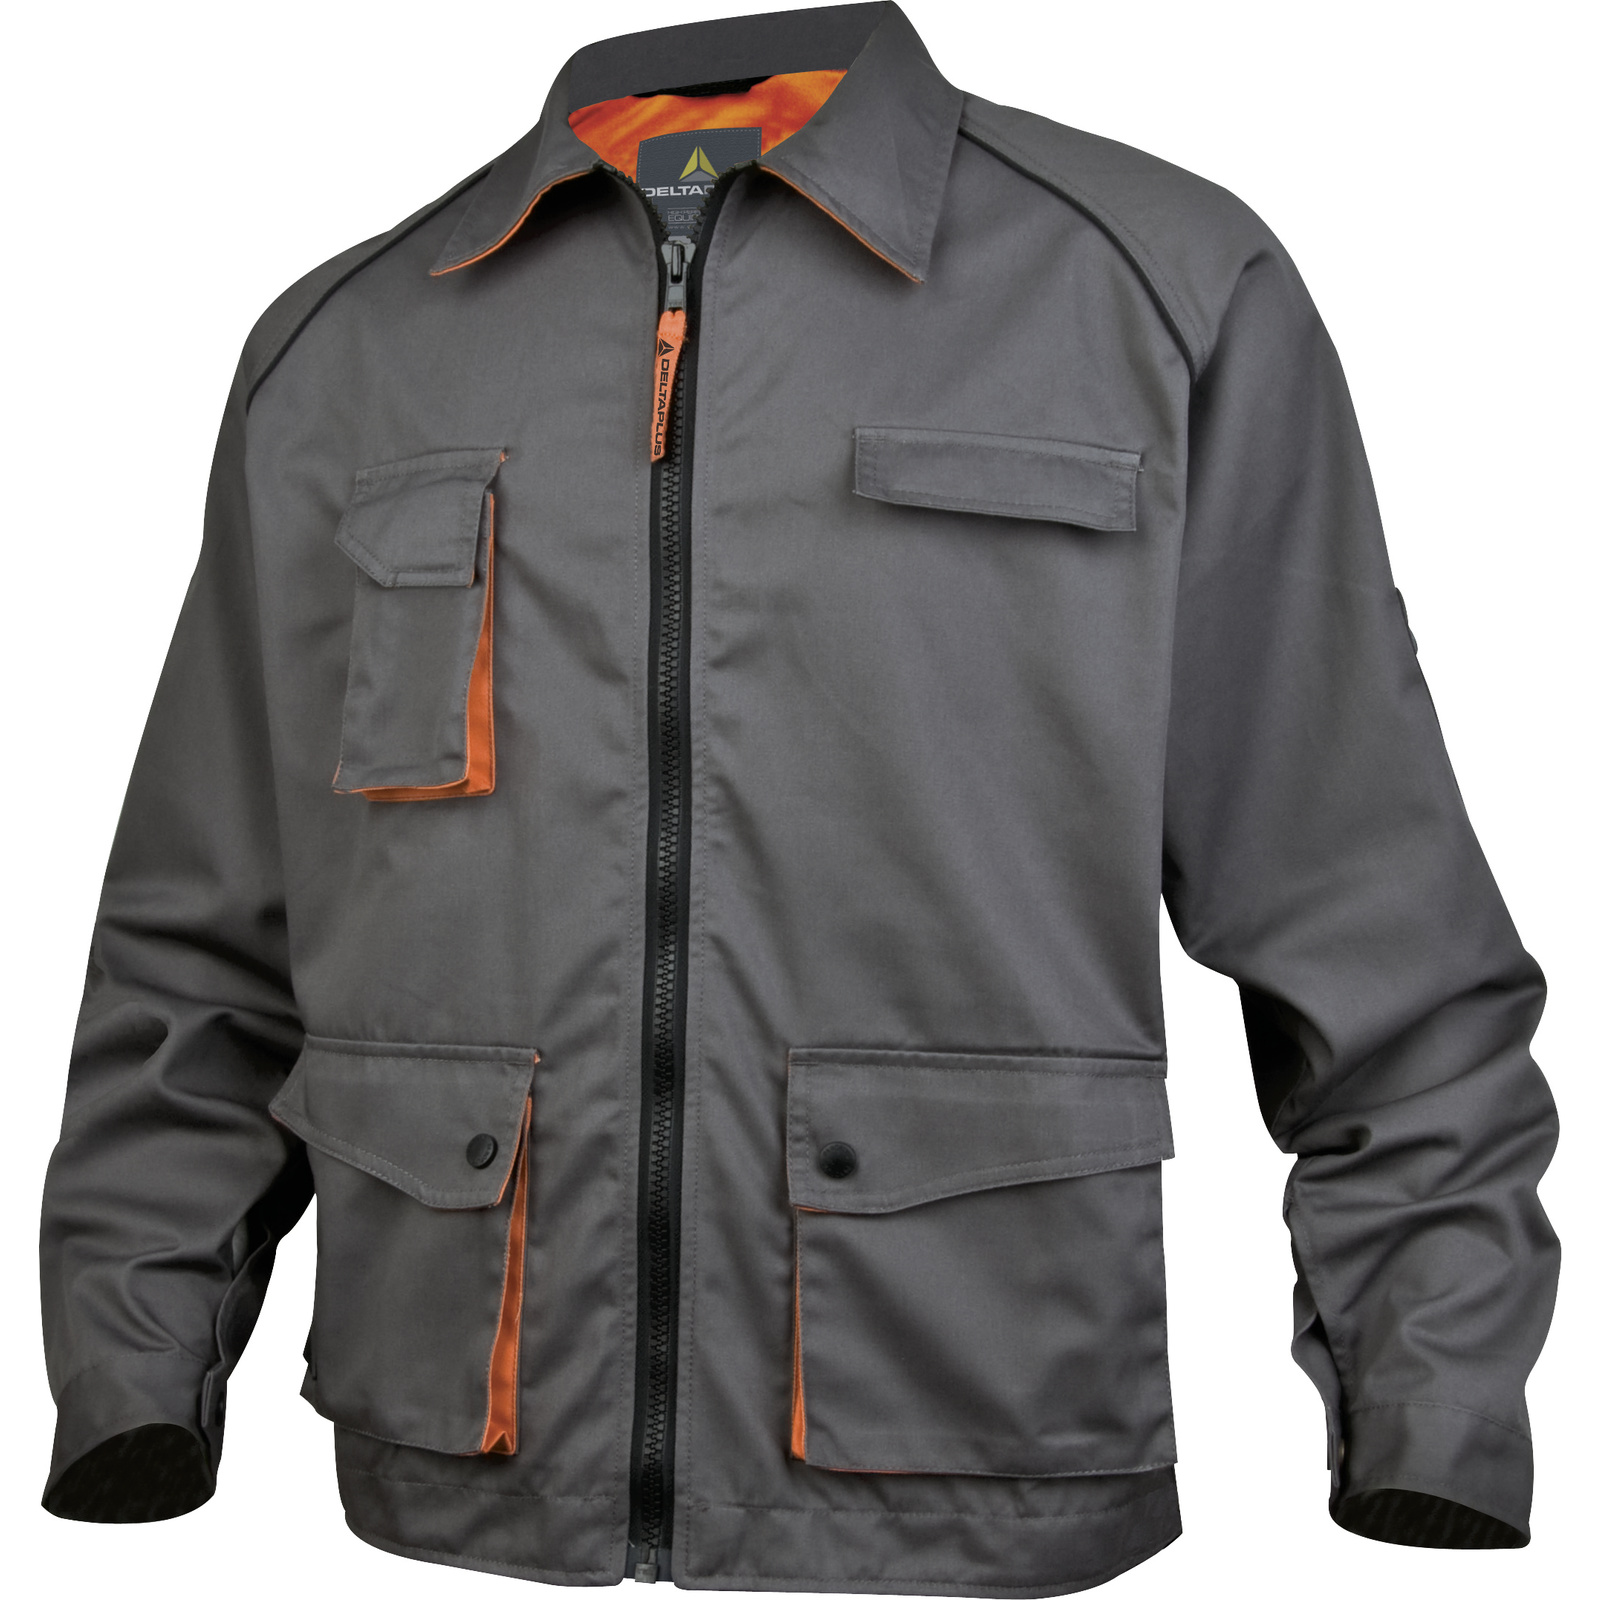 Working Jacket In Polyester Cotton Agriculture And